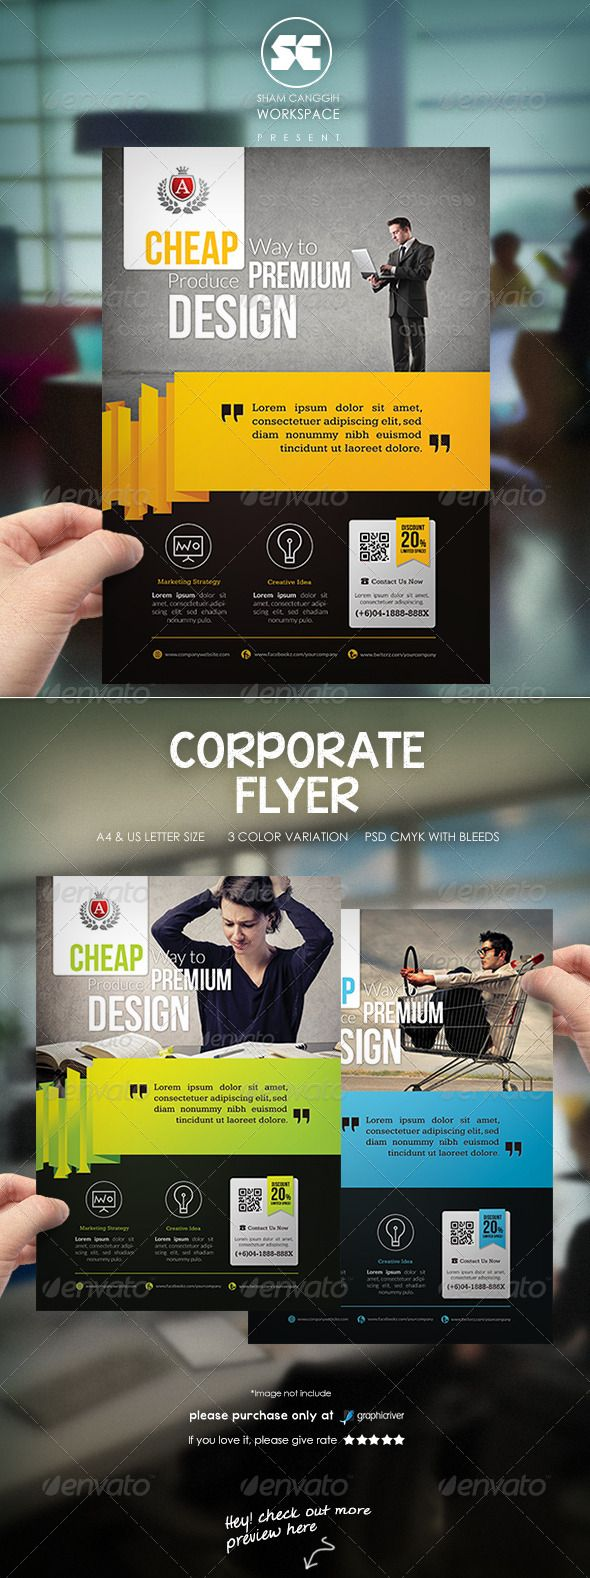 Corporate Flyer / Magazine Ads PSD Template | Buy and Download: http://graphicriver.net/item/corporate-flyer-magazine-ads/8076121?WT.ac=category_thumb&WT.z_author=shamcanggih&ref=ksioks